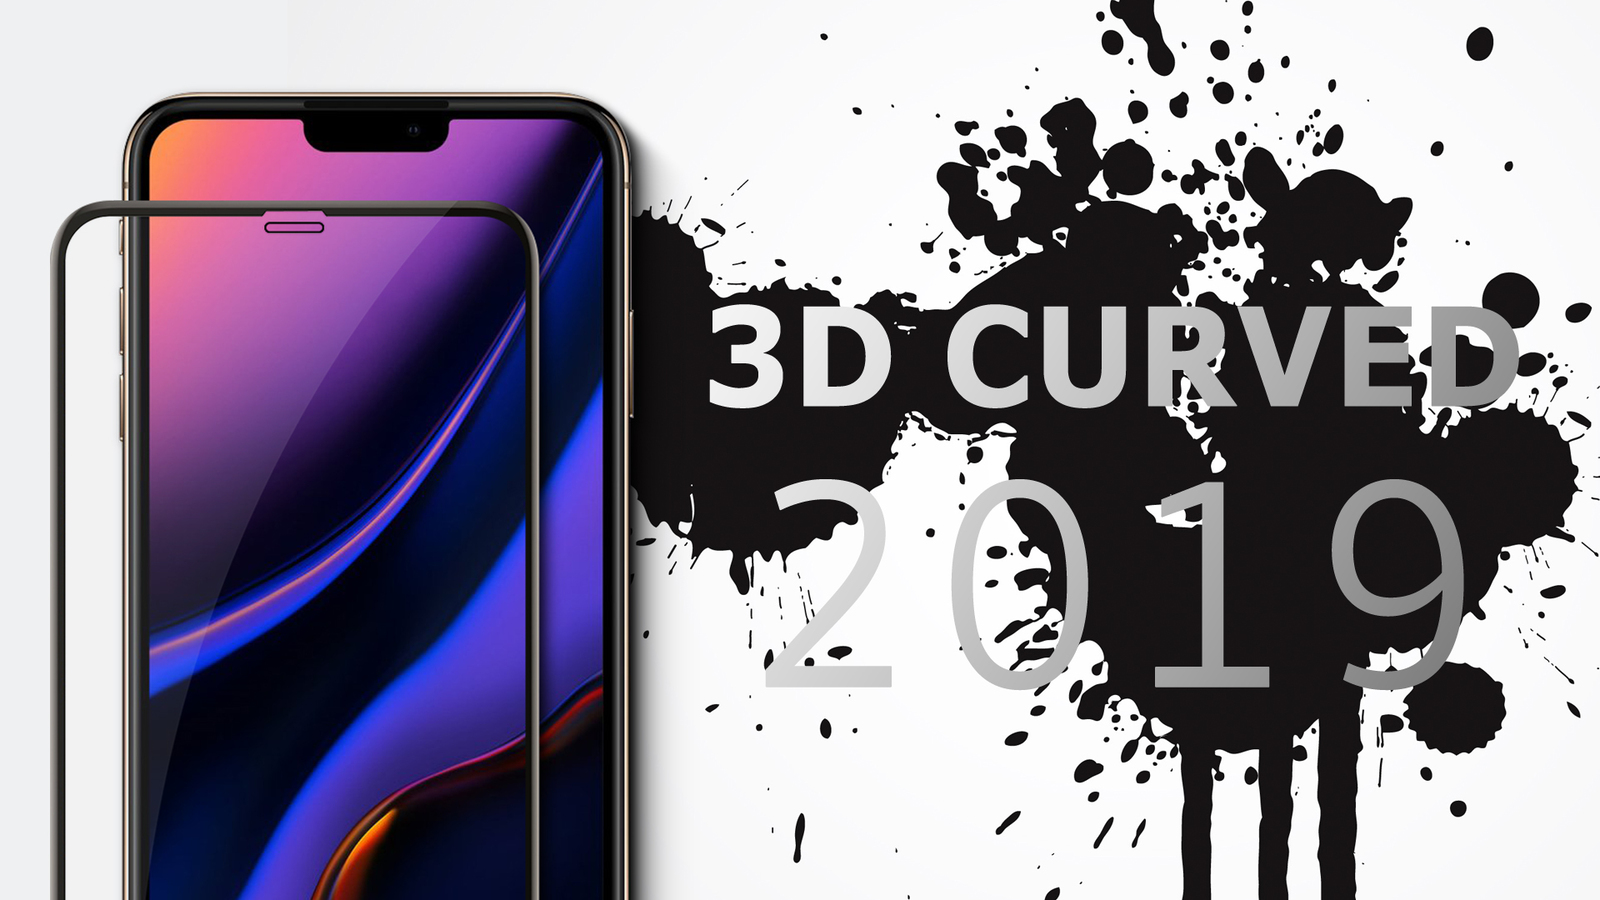 Vmax-New-3D-Curved-Full-Cover-Premium-Tempered-Glass-Screen-Protector-for-All-iP thumbnail 13